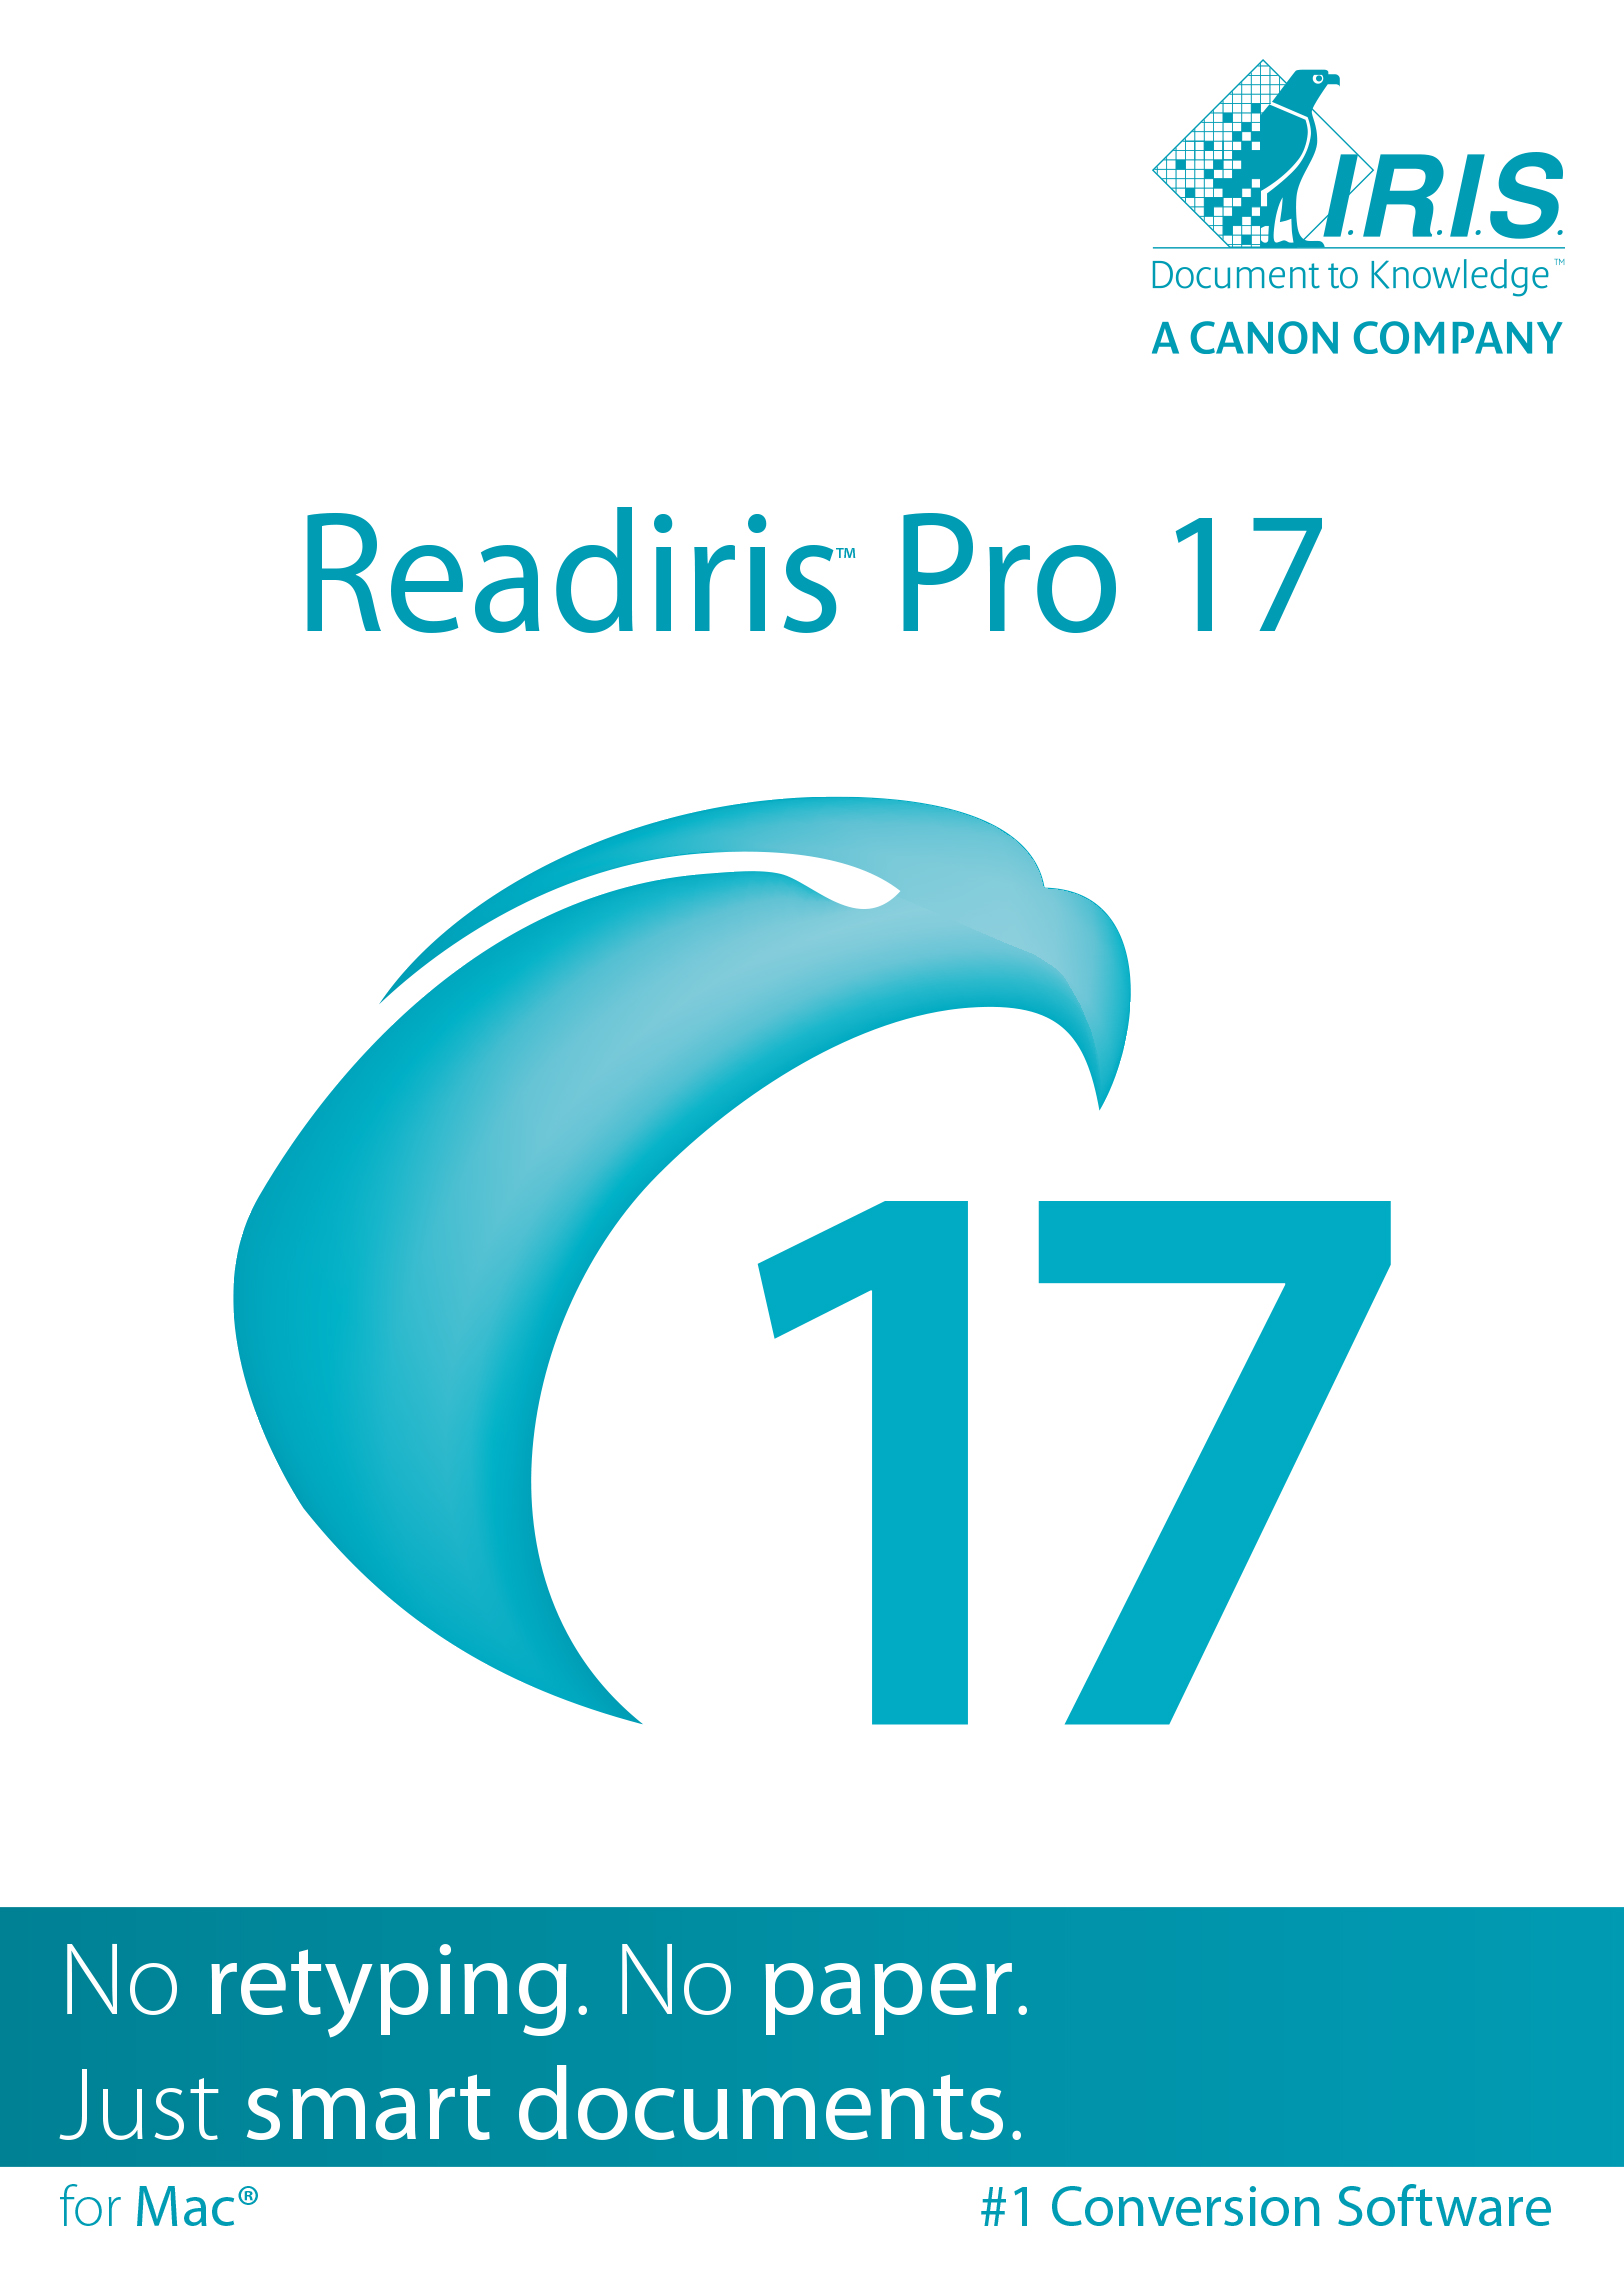 Readiris Pro 17 for Mac OS X - Conversion software [Download] by IRIS USA, Inc.